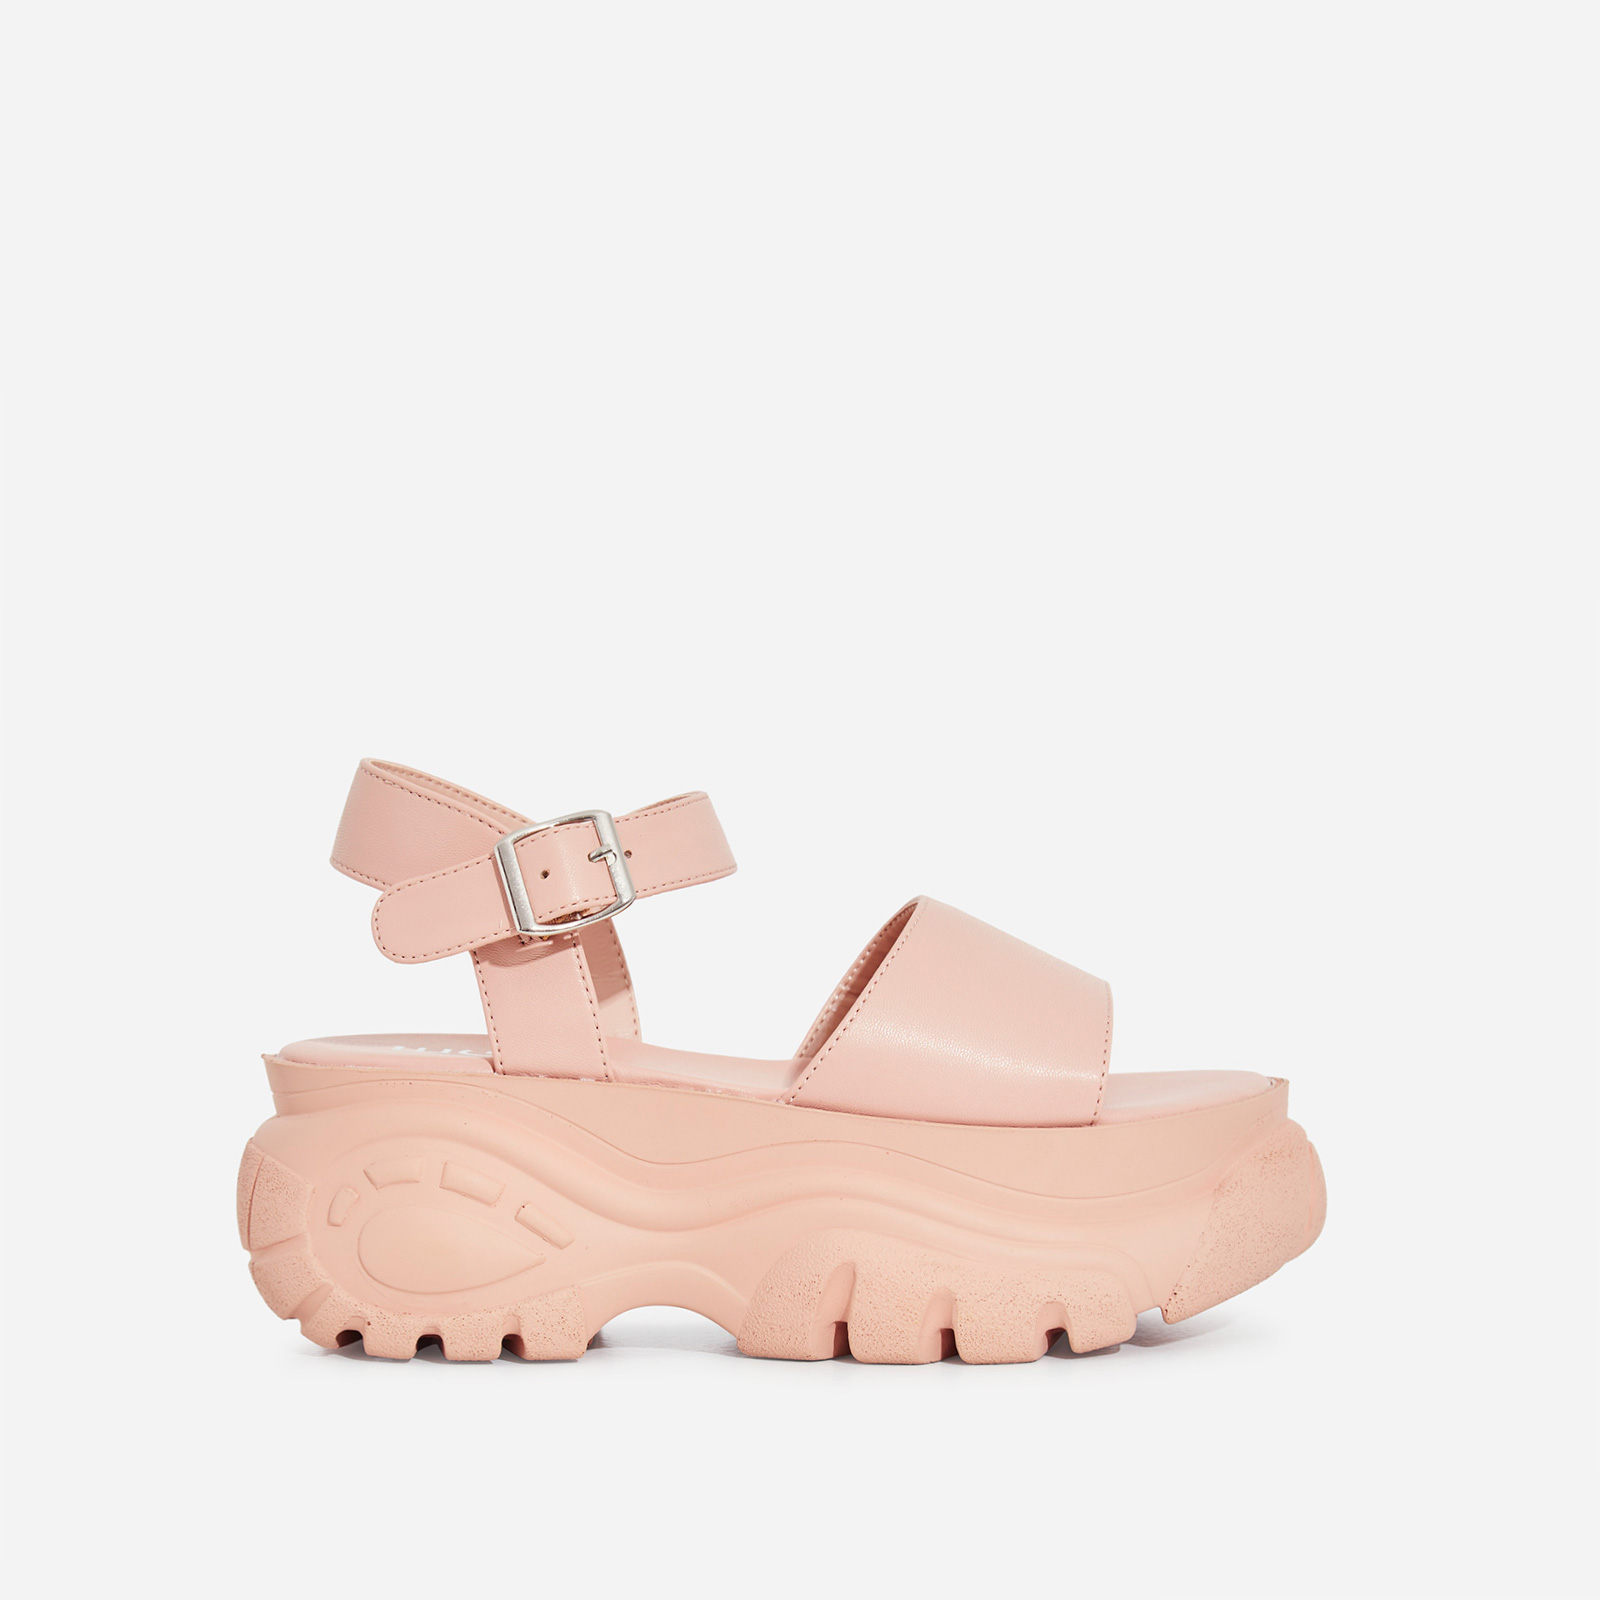 Cade Chunky Sole Sandal In Nude Faux Leather